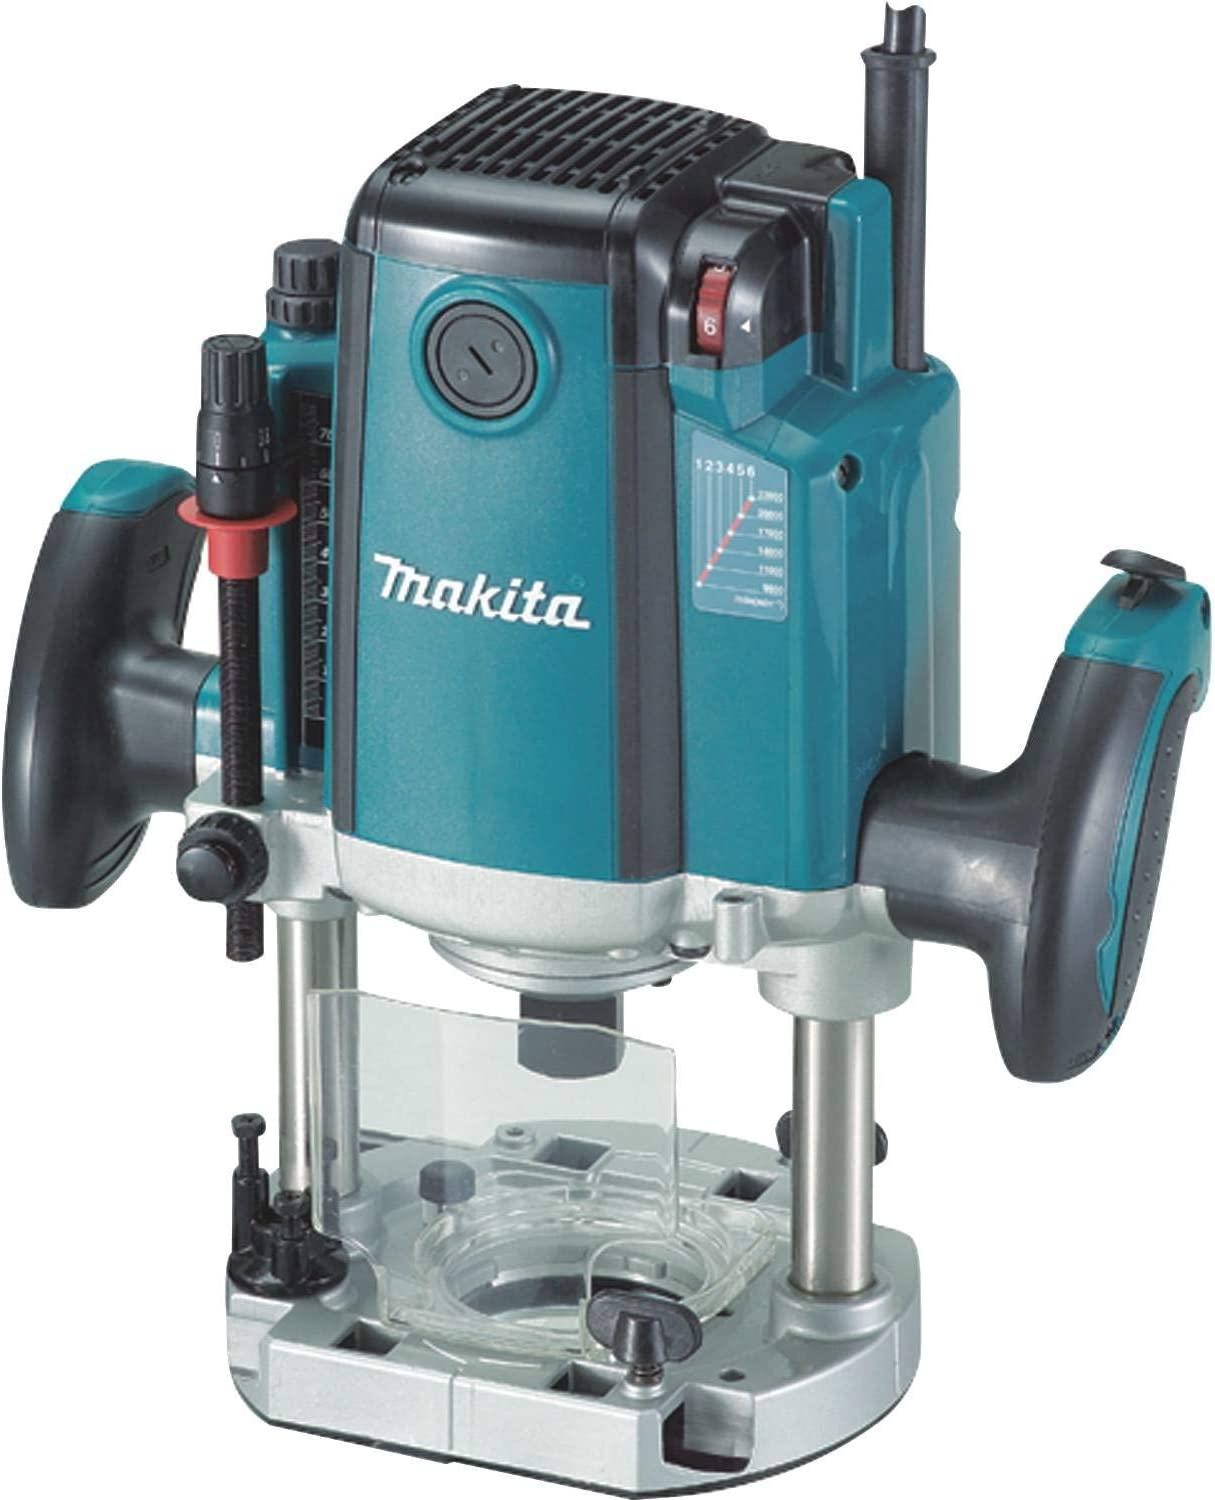 5. Makita RP2301FC Variable Speed Plunge Router